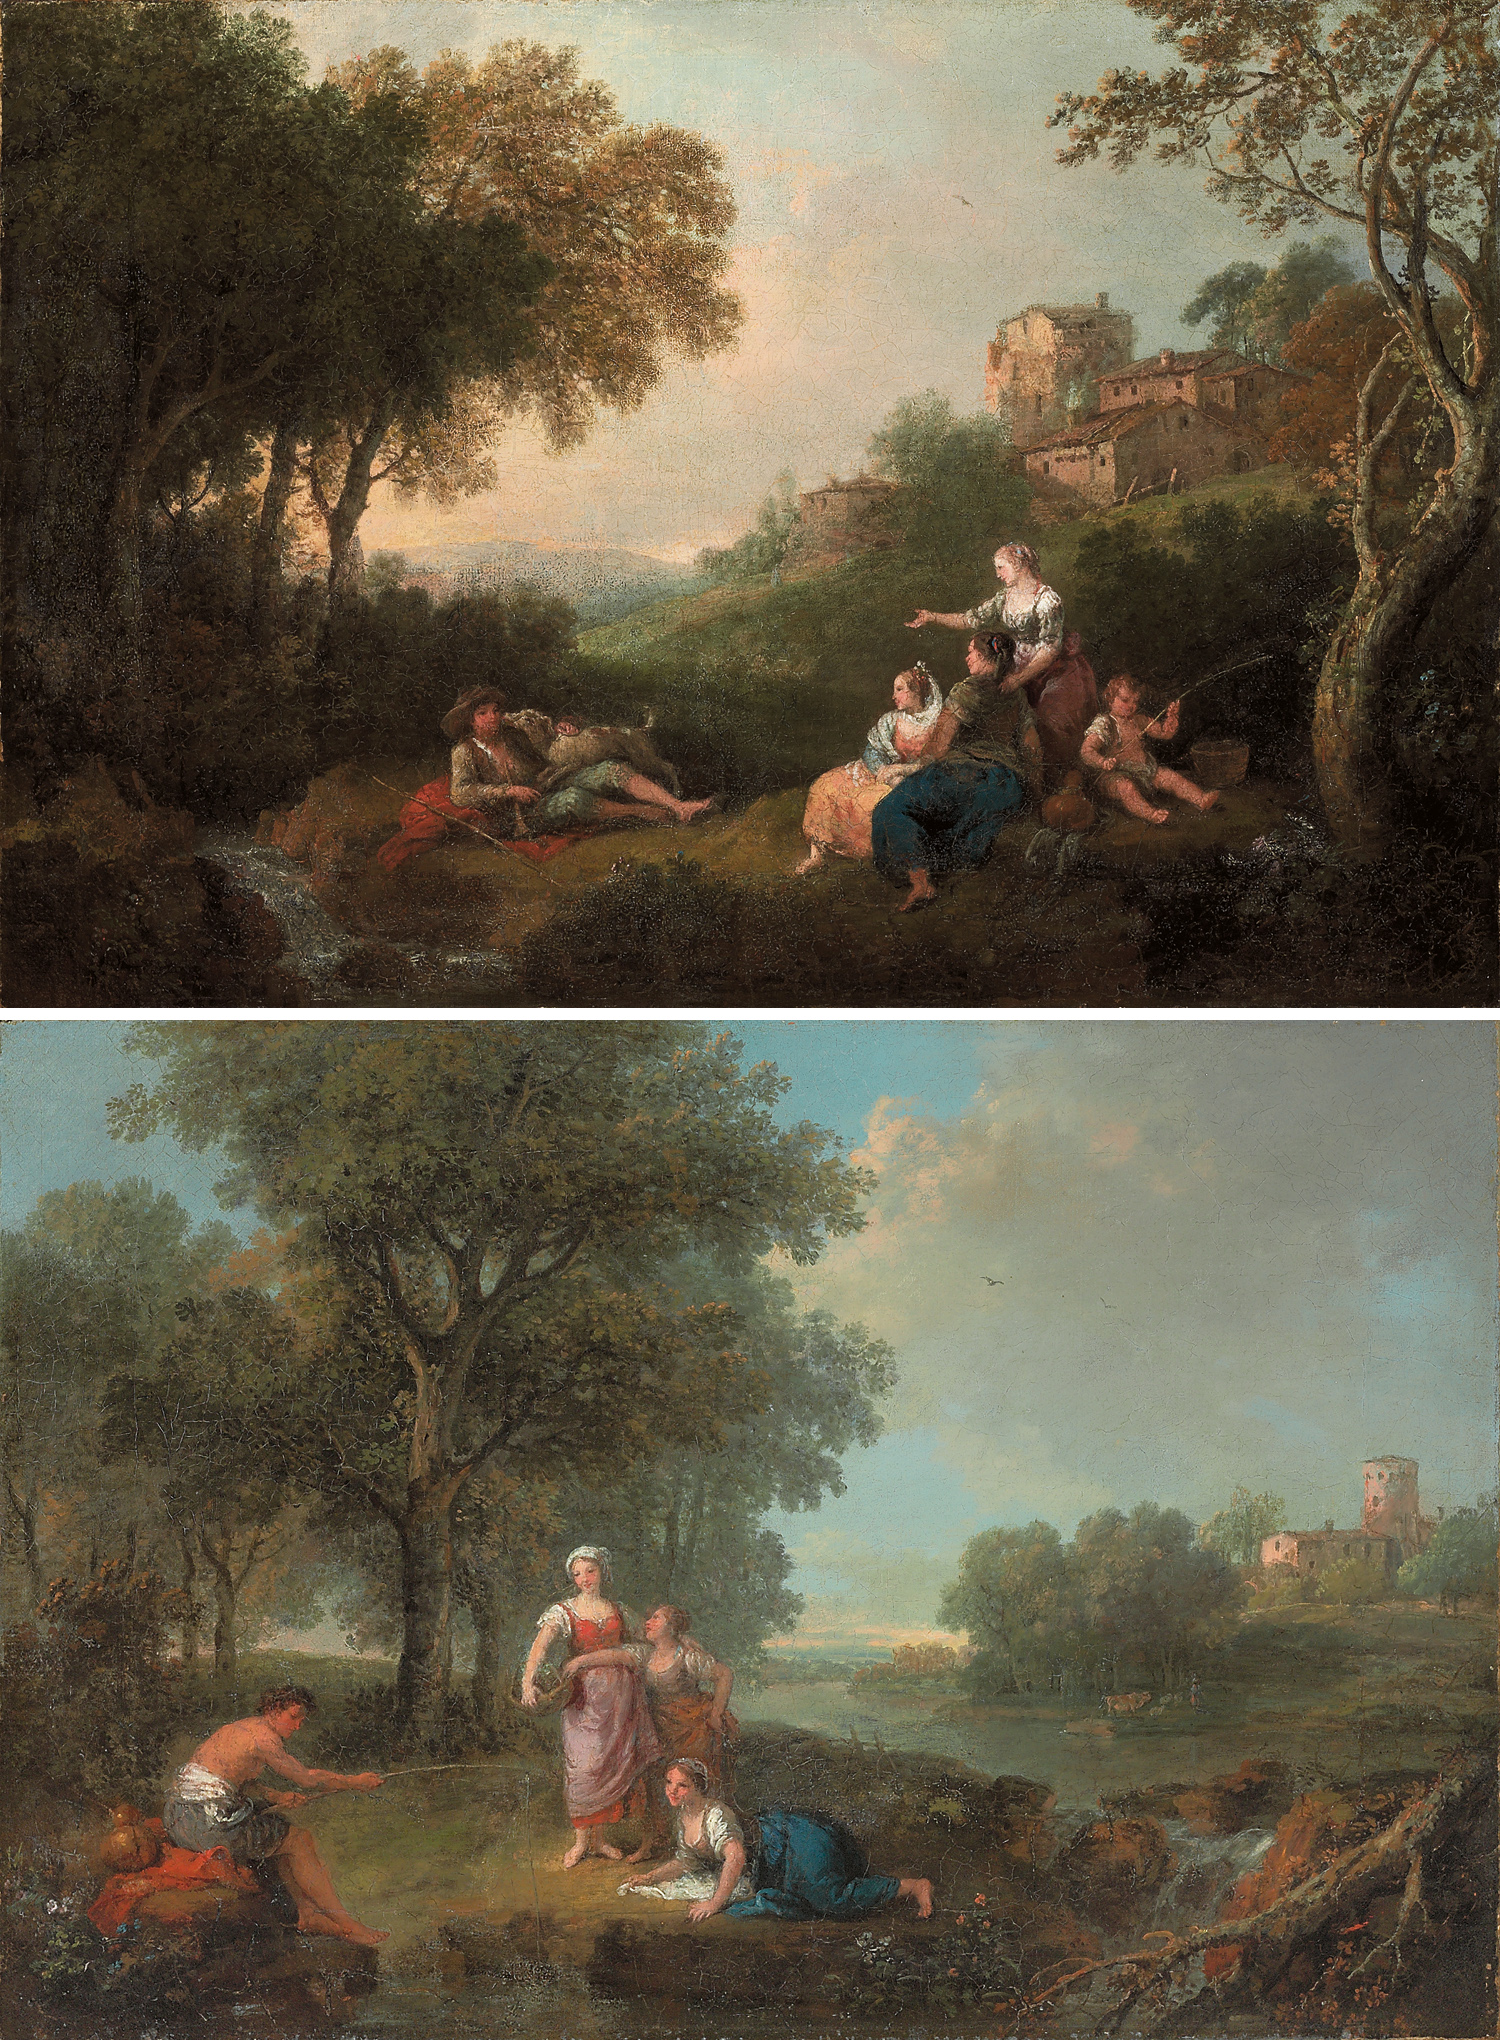 A wooded river landscape with figures resting and fishing, cattle watering at a river in the distance; and A wooded landscape with figures resting and fishing by a stream